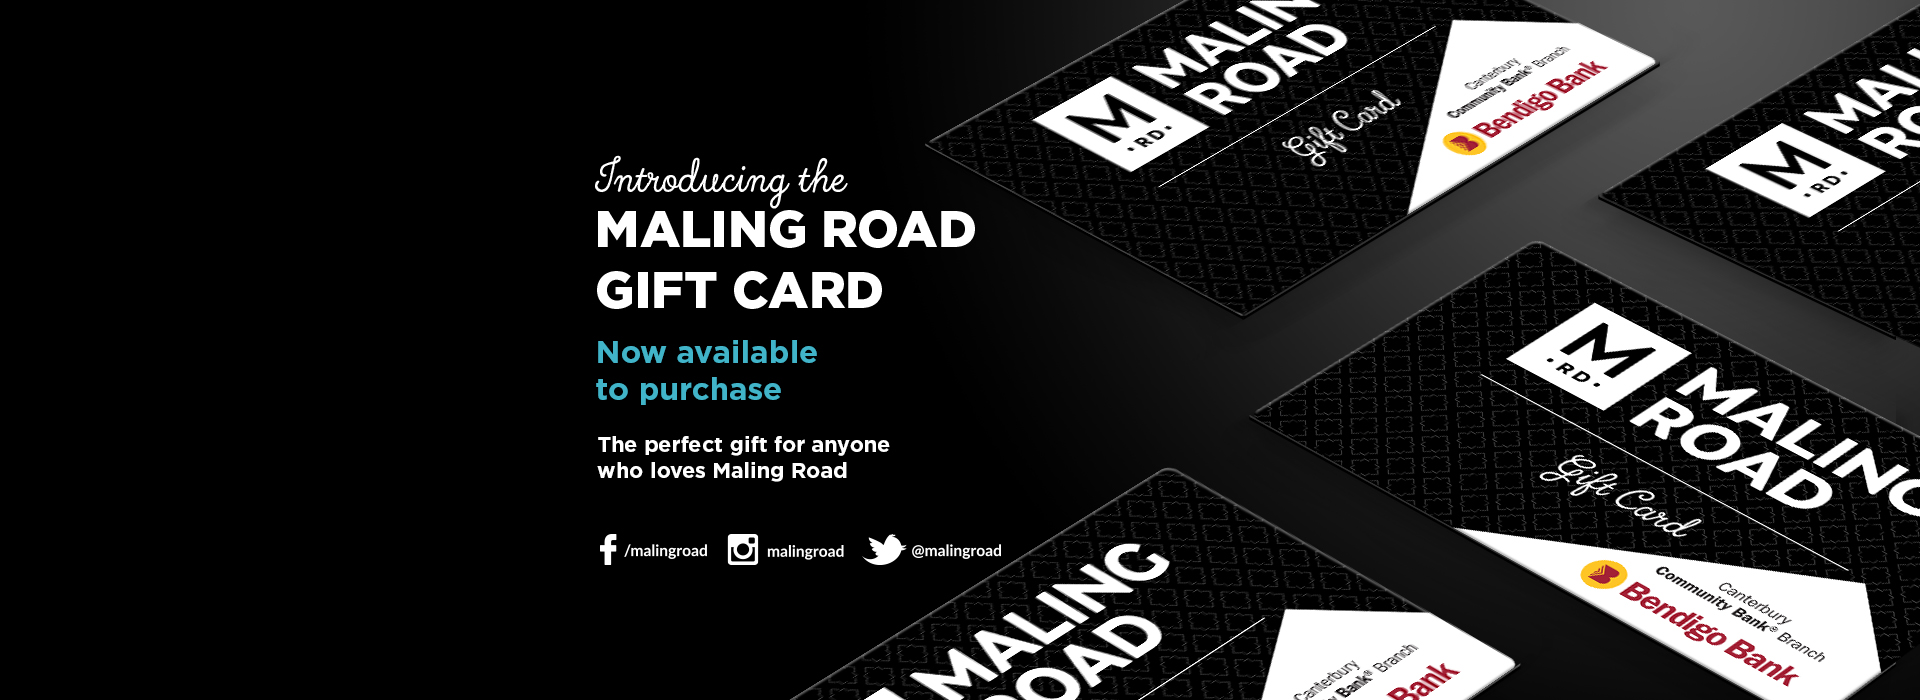 Maling Road Gift Card-Home-Banner-available